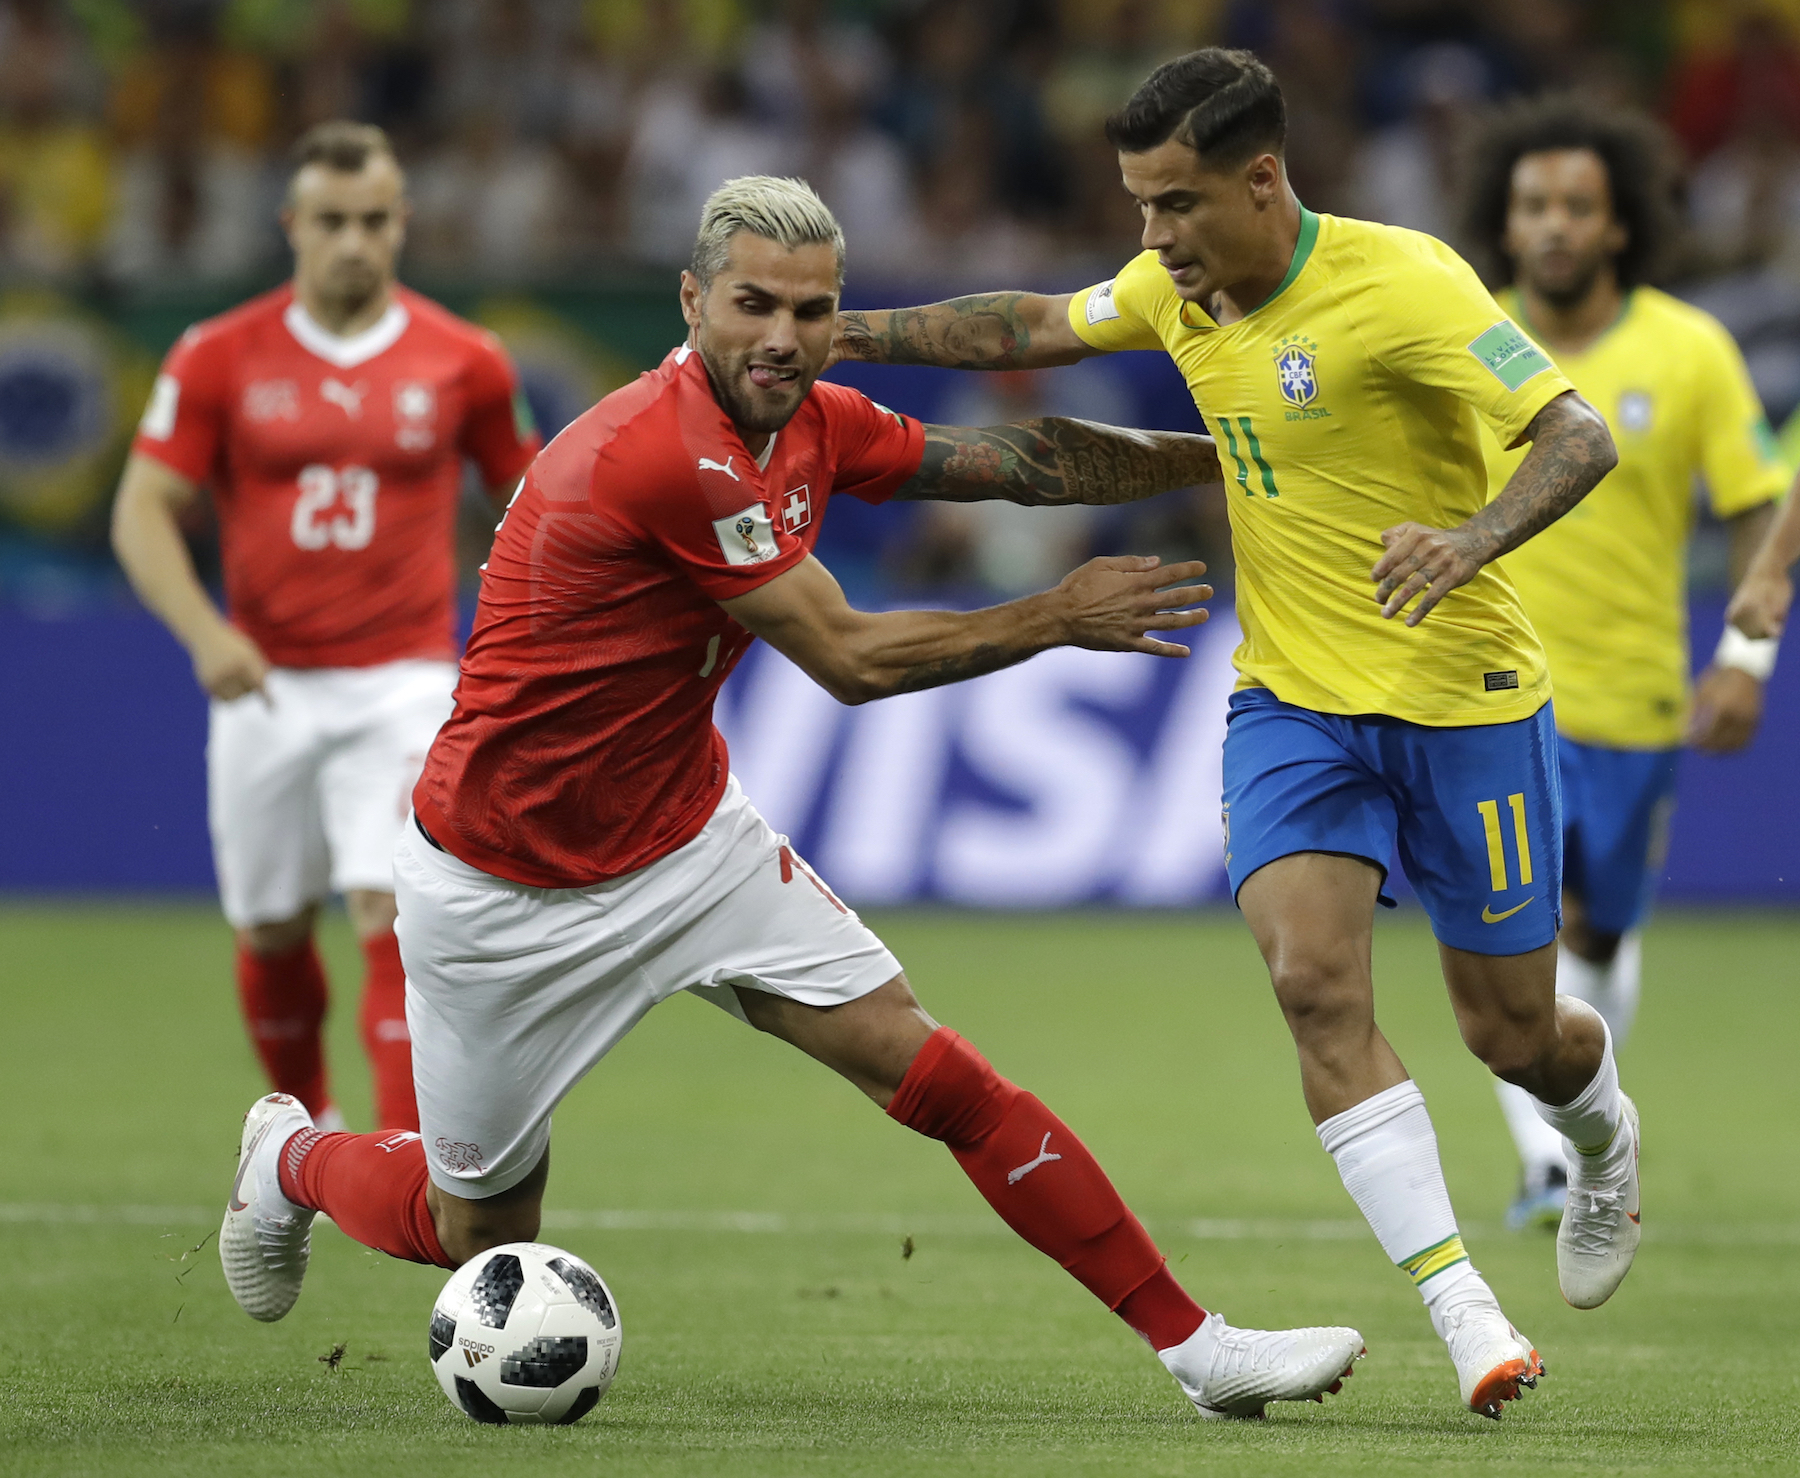 <div class='meta'><div class='origin-logo' data-origin='AP'></div><span class='caption-text' data-credit='AP Photo/Themba Hadebe'>Switzerland's Valon Behrami, left, and Brazil's Philippe Coutinho challenge for the ball during the group E match between Brazil and Switzerland at the 2018 soccer World Cup.</span></div>